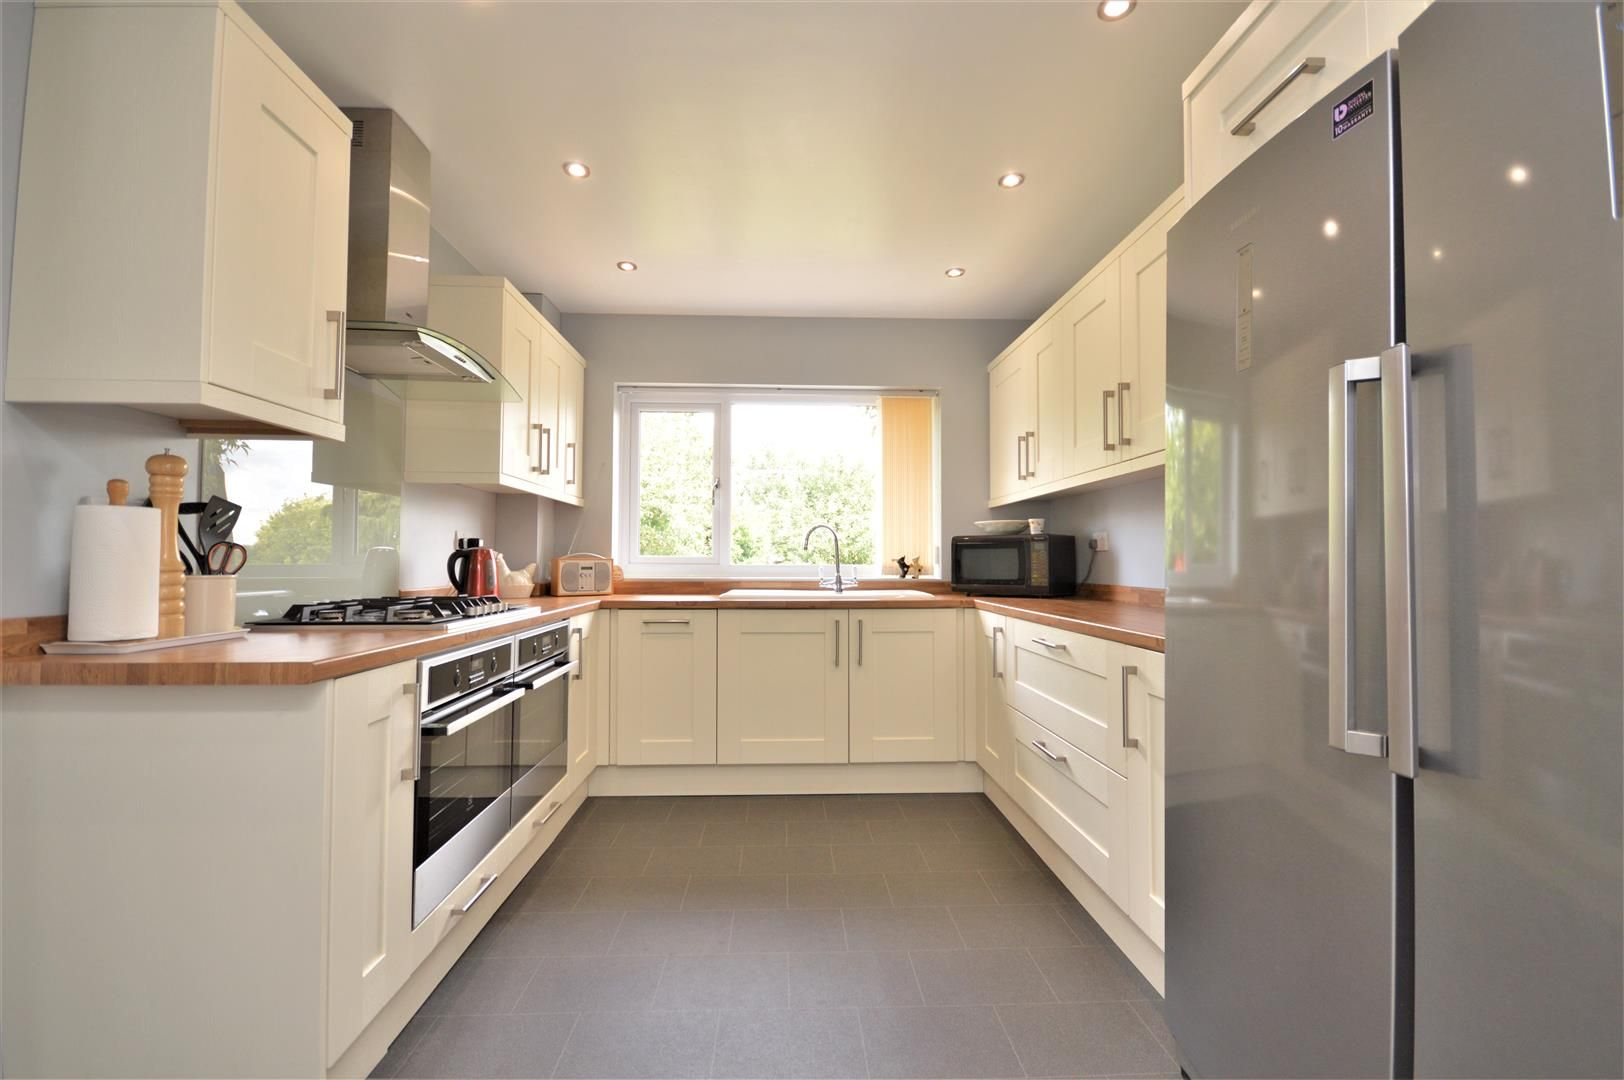 3 bed detached for sale in Kings Caple  - Property Image 5